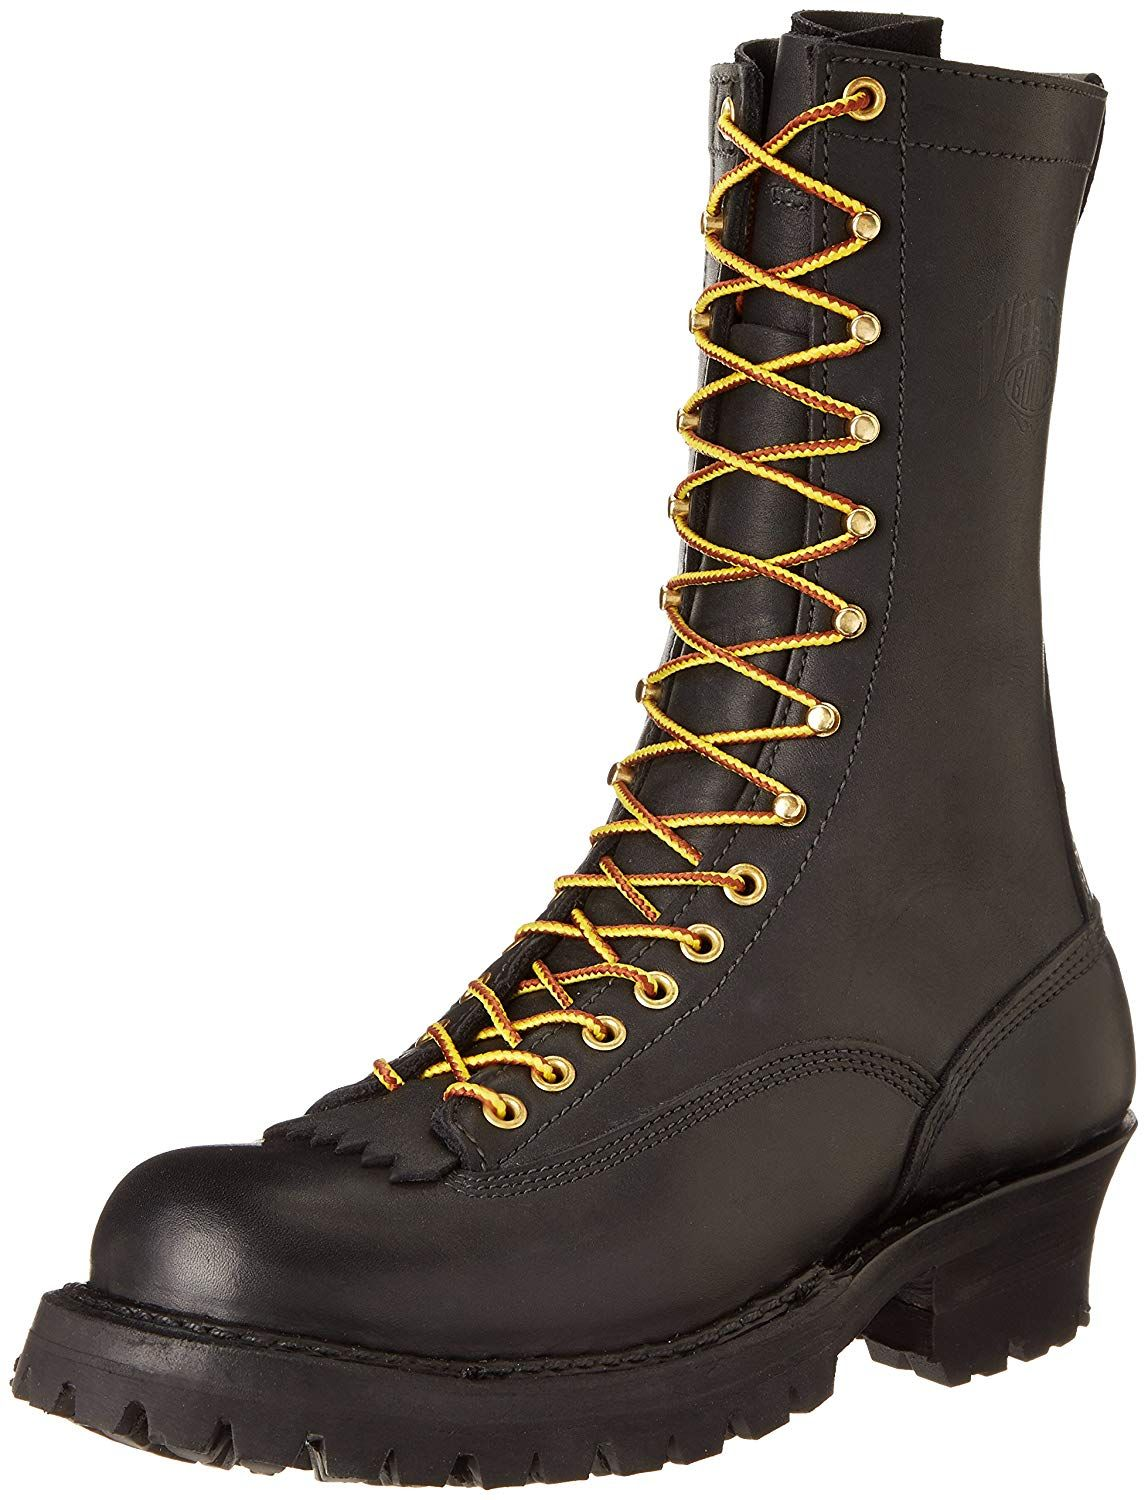 White S Boots Men S 400vltt Smoke Jumper Lace To Toe Boot Boots Men Boots Fire Boots